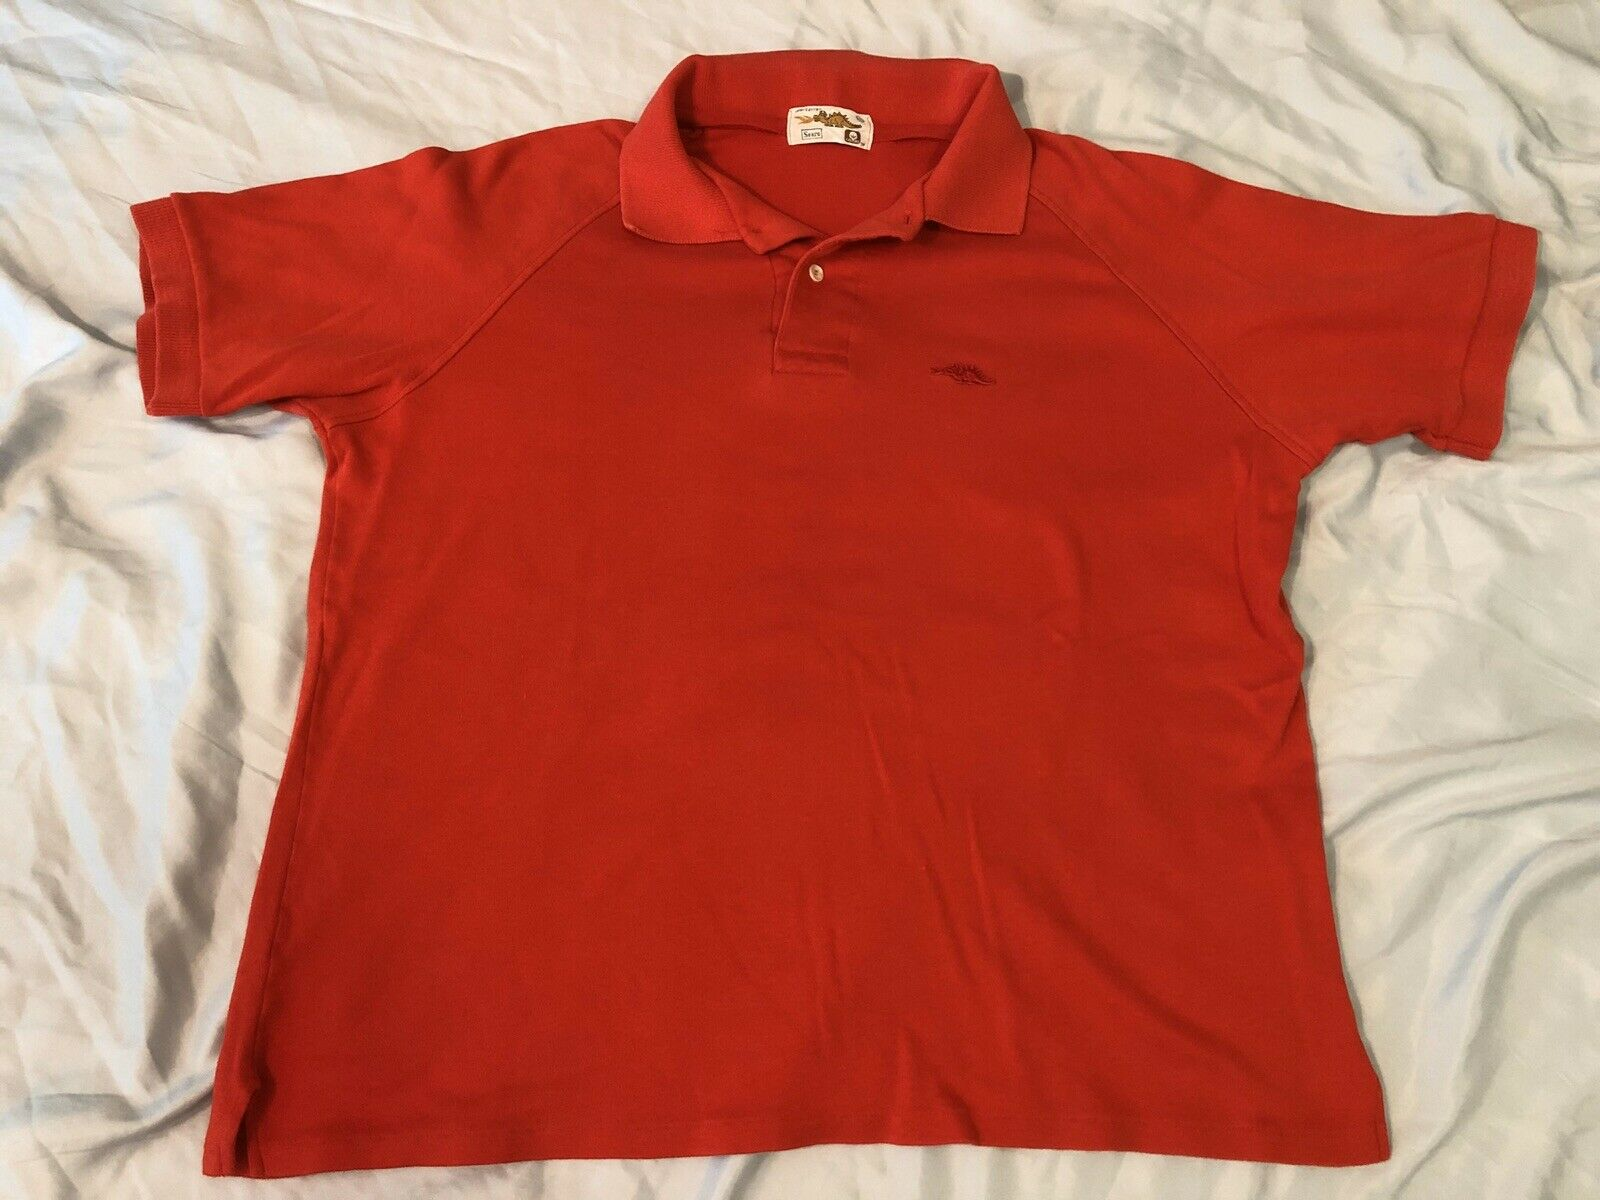 Vintage 1980s 80s Sears Dragon Polo T-Shirt, Red … - image 2